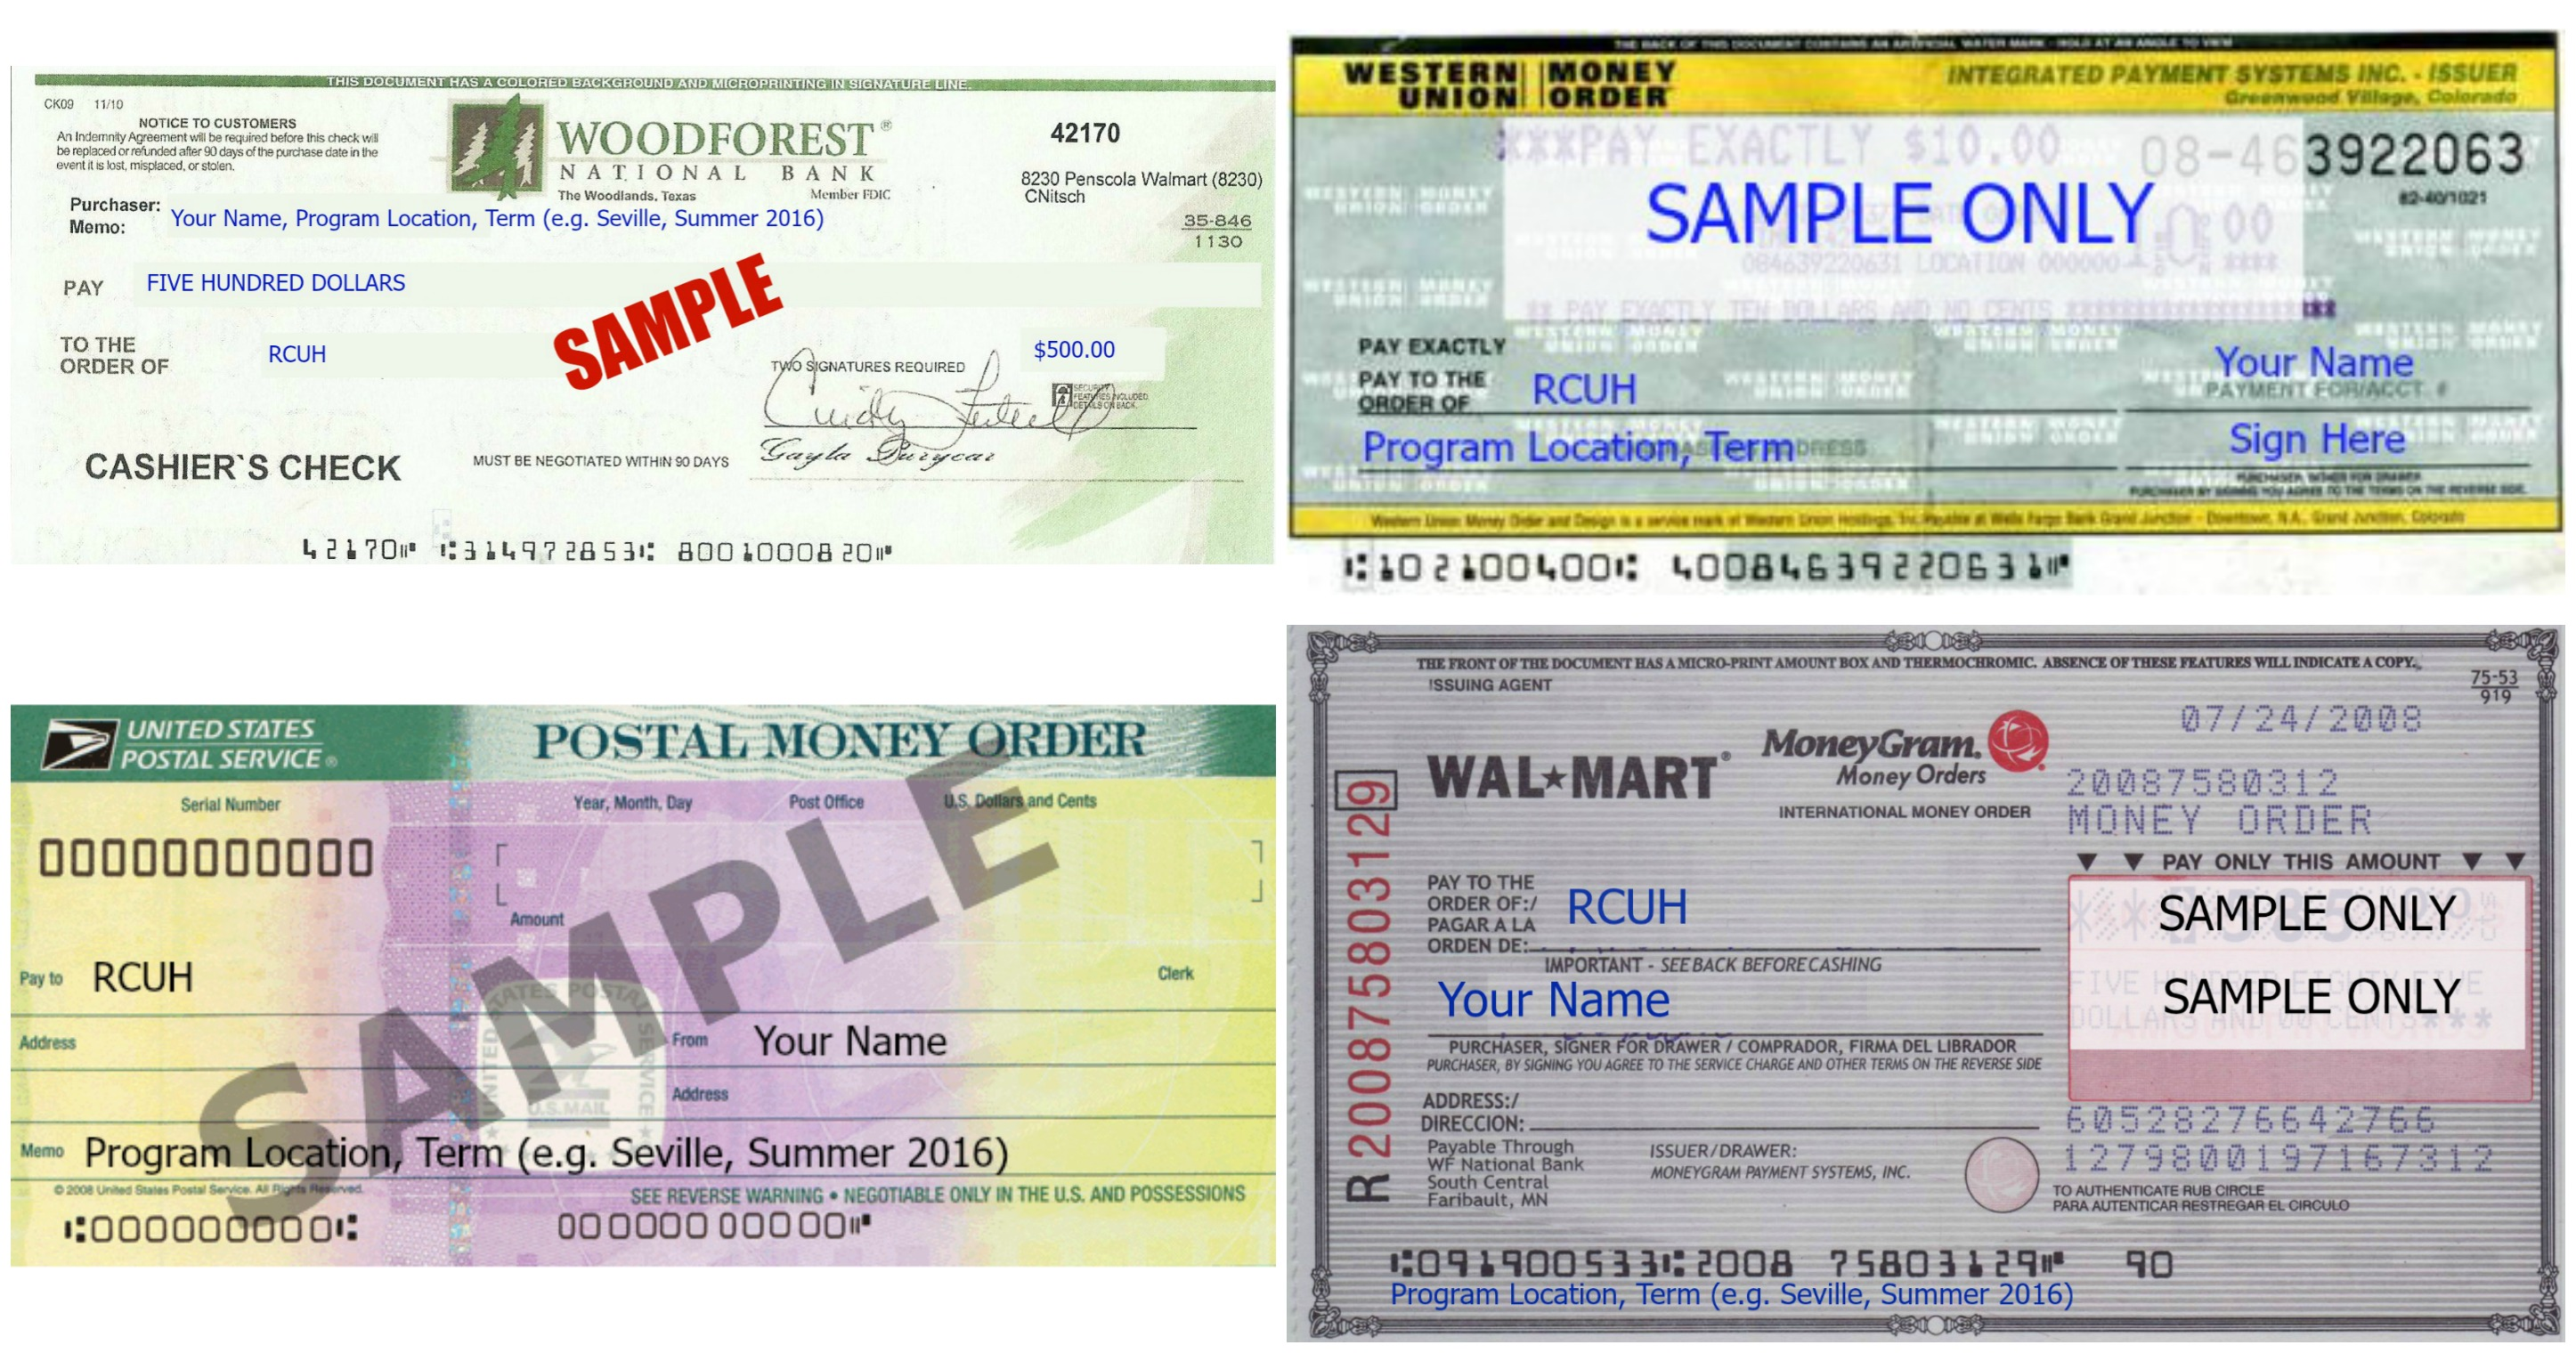 Faqs for students money order cashiers check samples ccuart Gallery